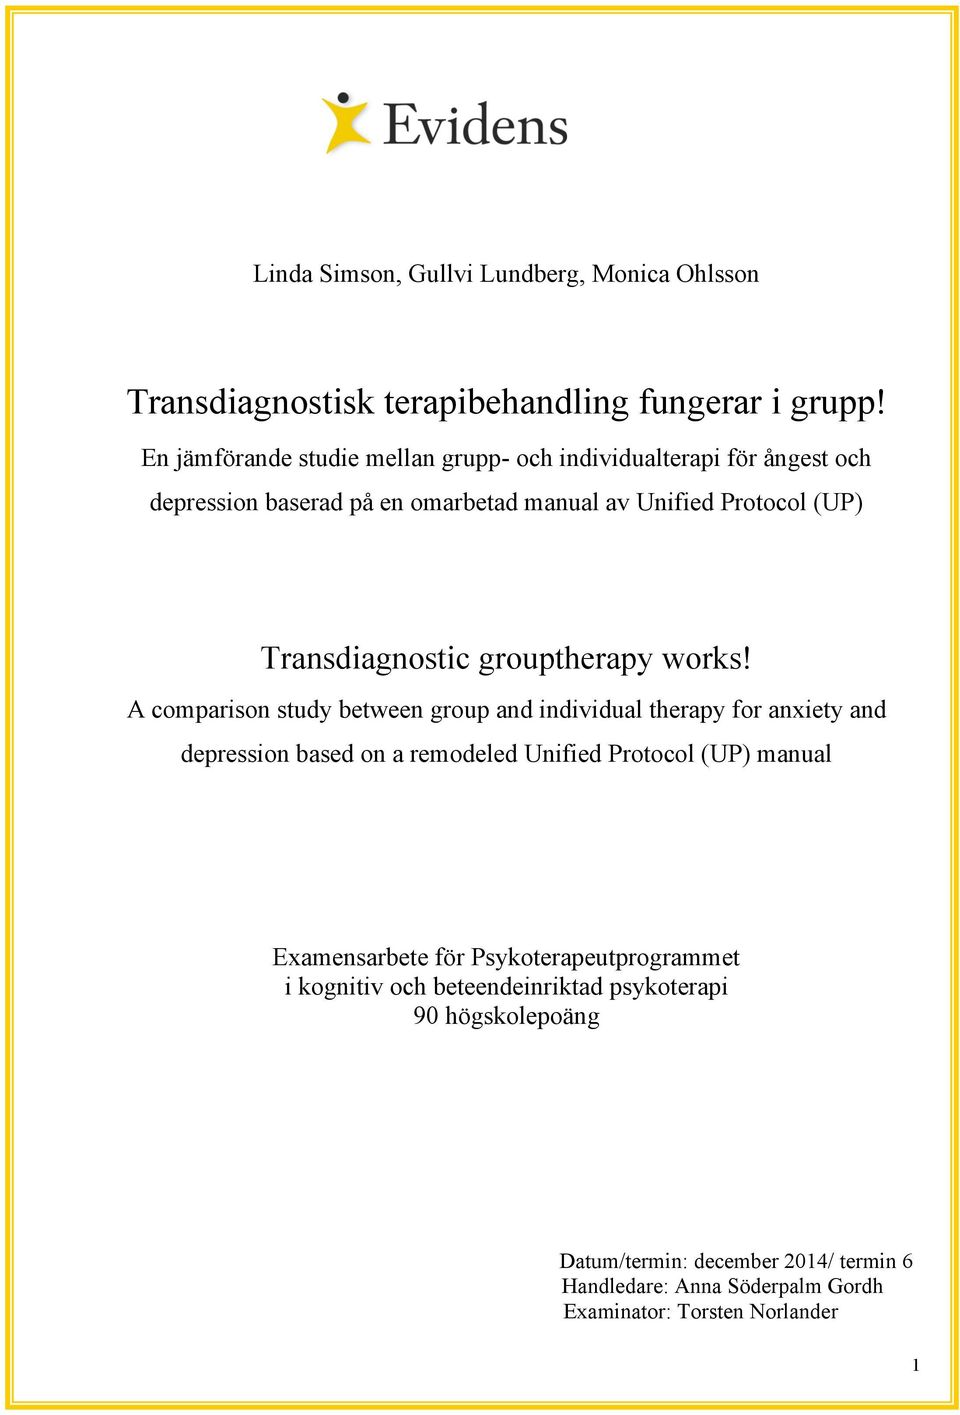 Transdiagnostic grouptherapy works!